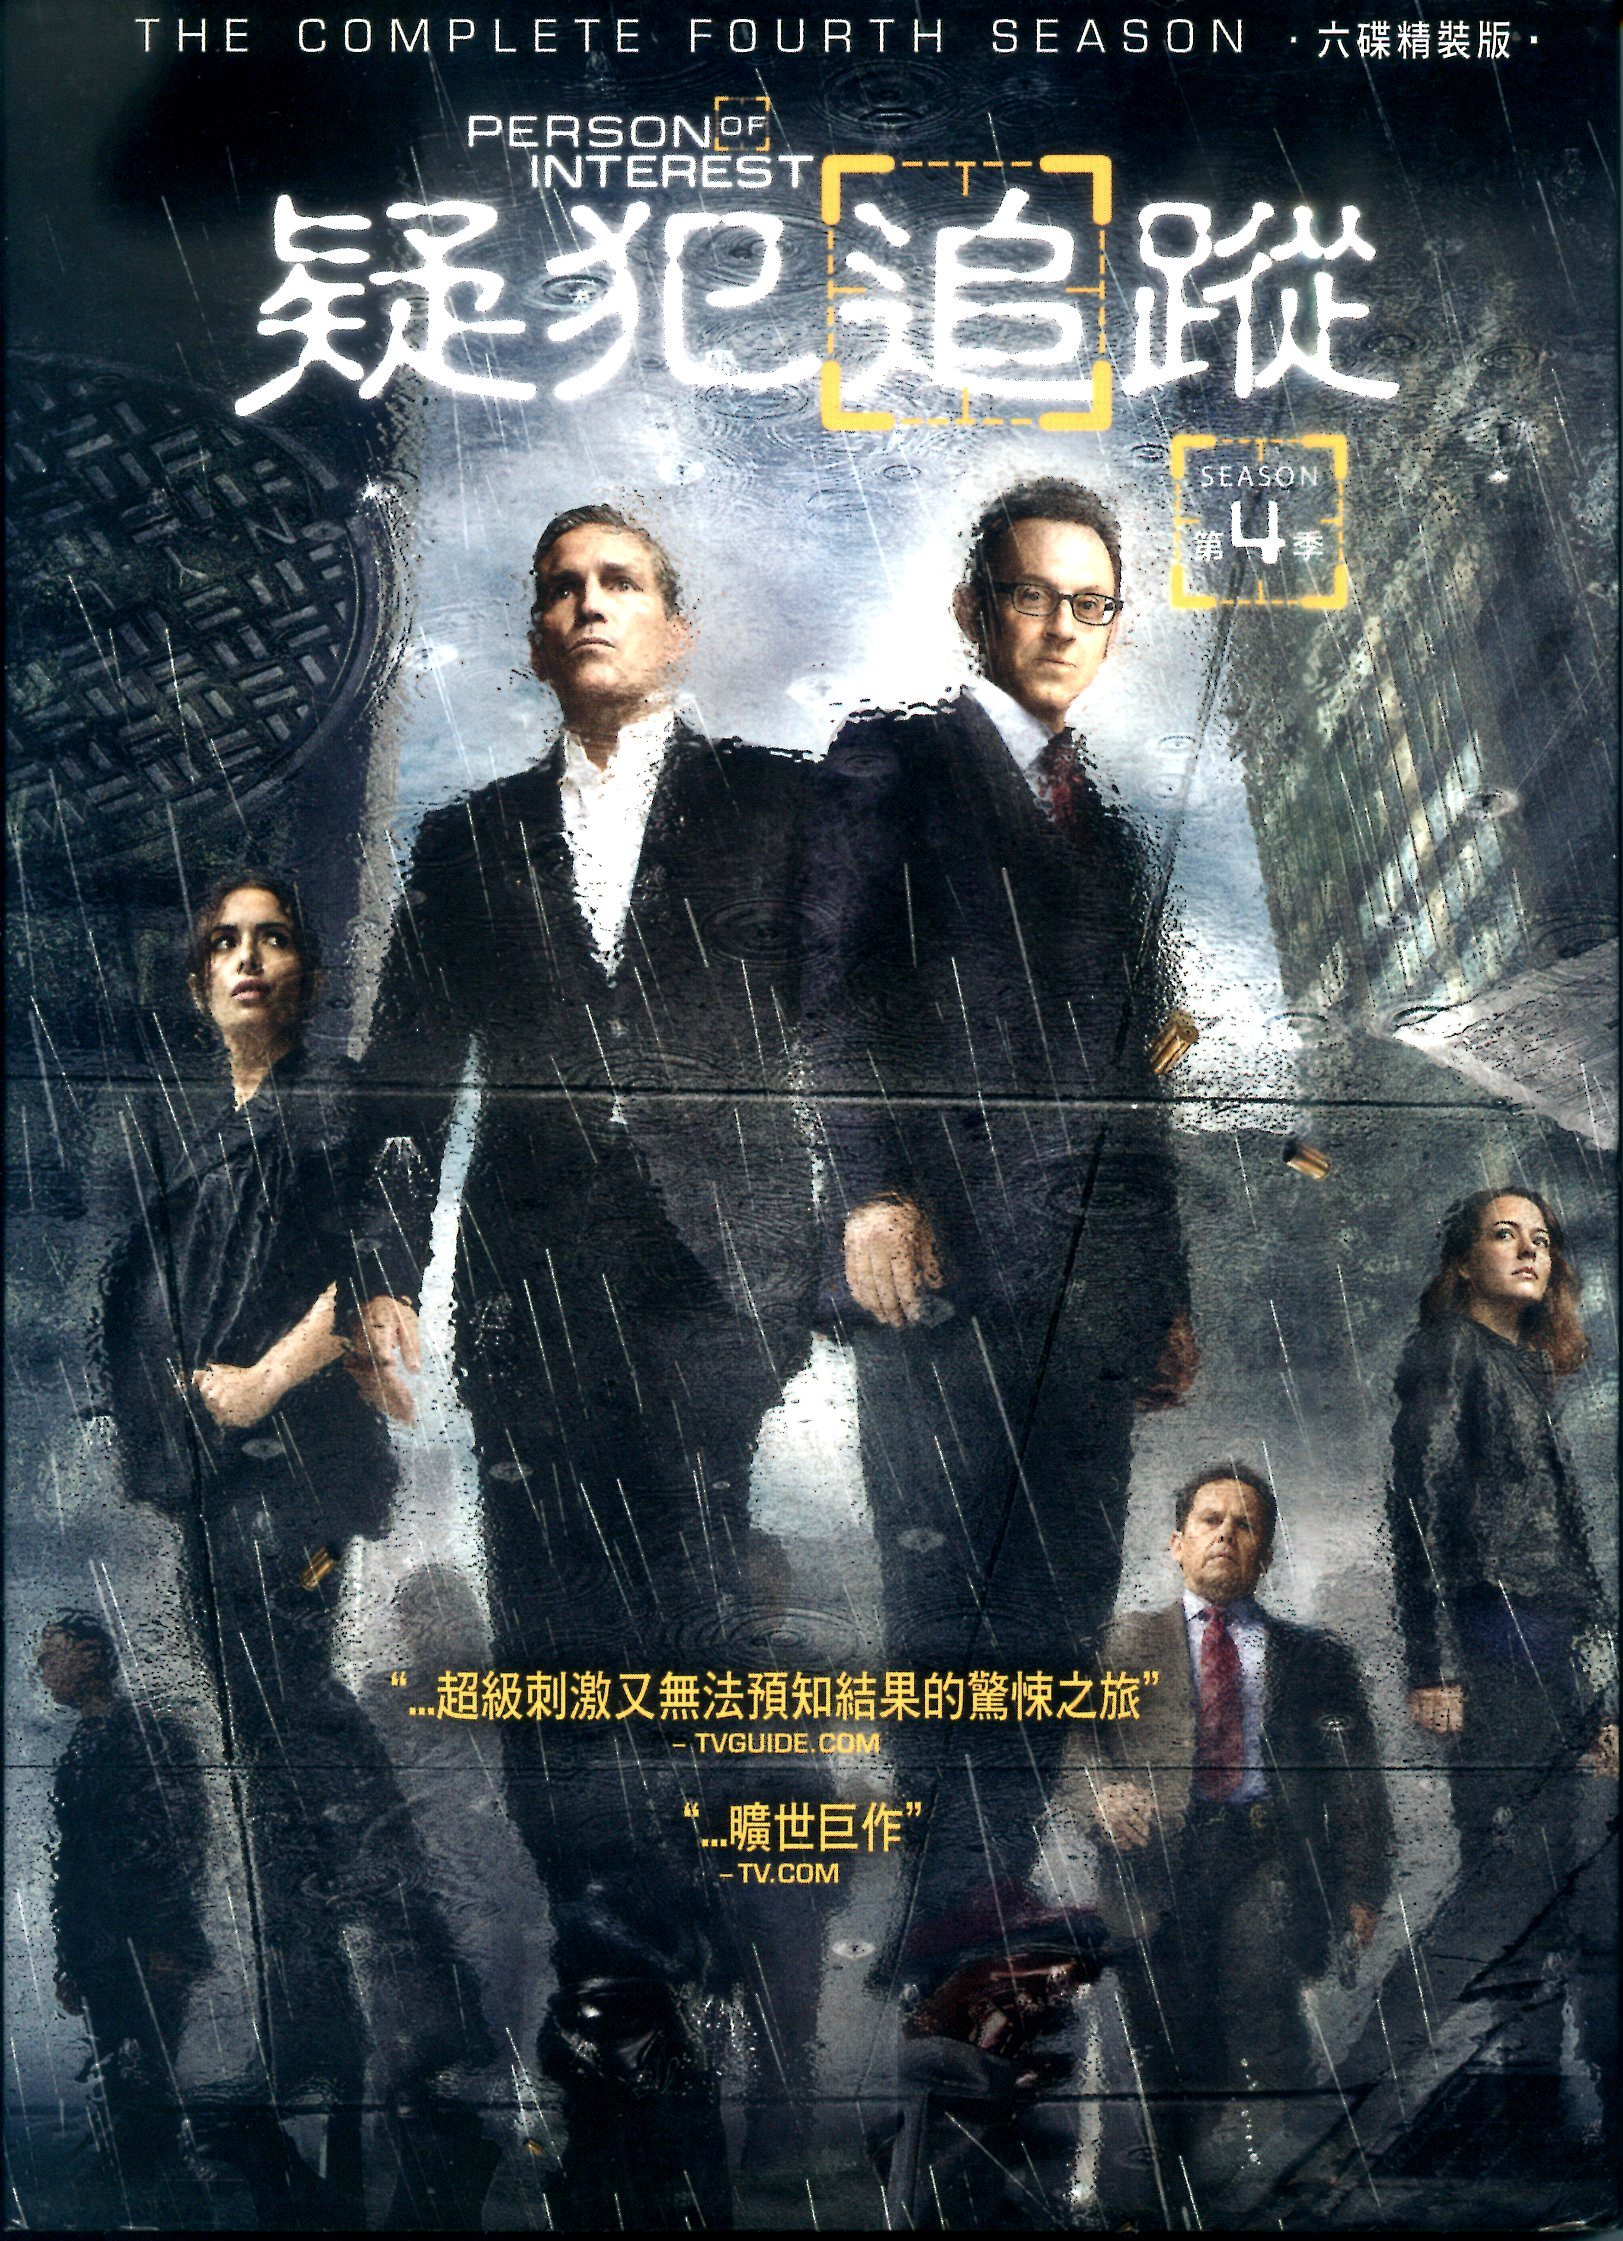 Person of interest(家用版) the complete first season = 疑犯追蹤.